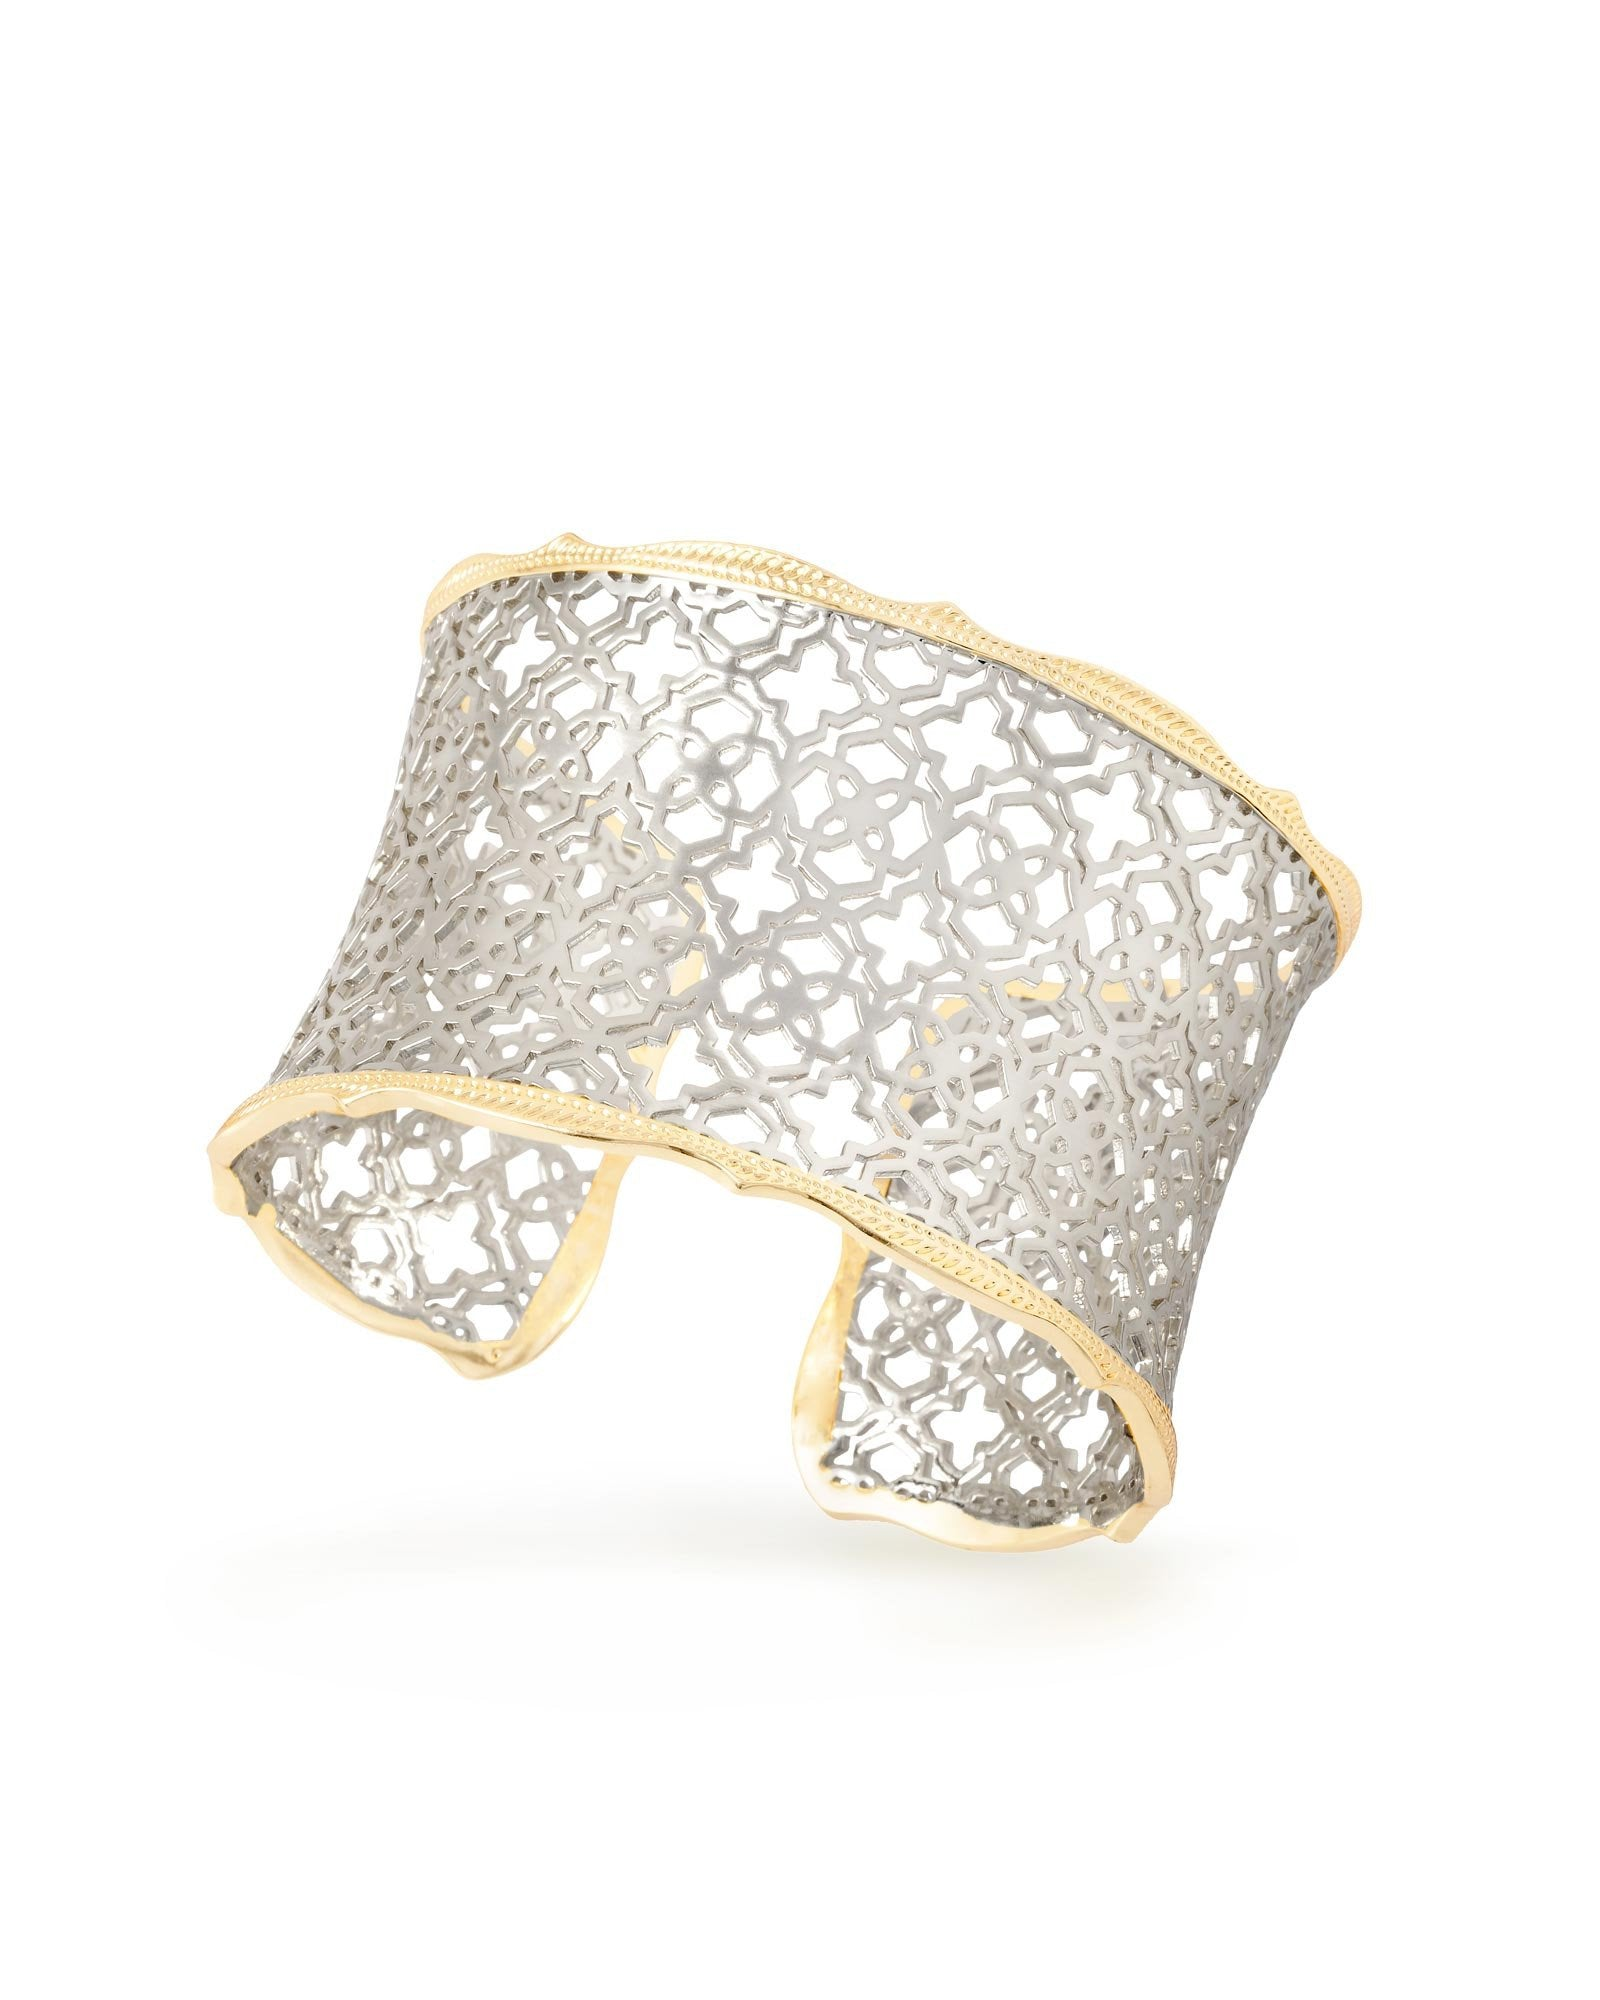 9ccb4d51f82e3 Kendra Scott Candice Gold and Silver Filigree Cuff Bracelet